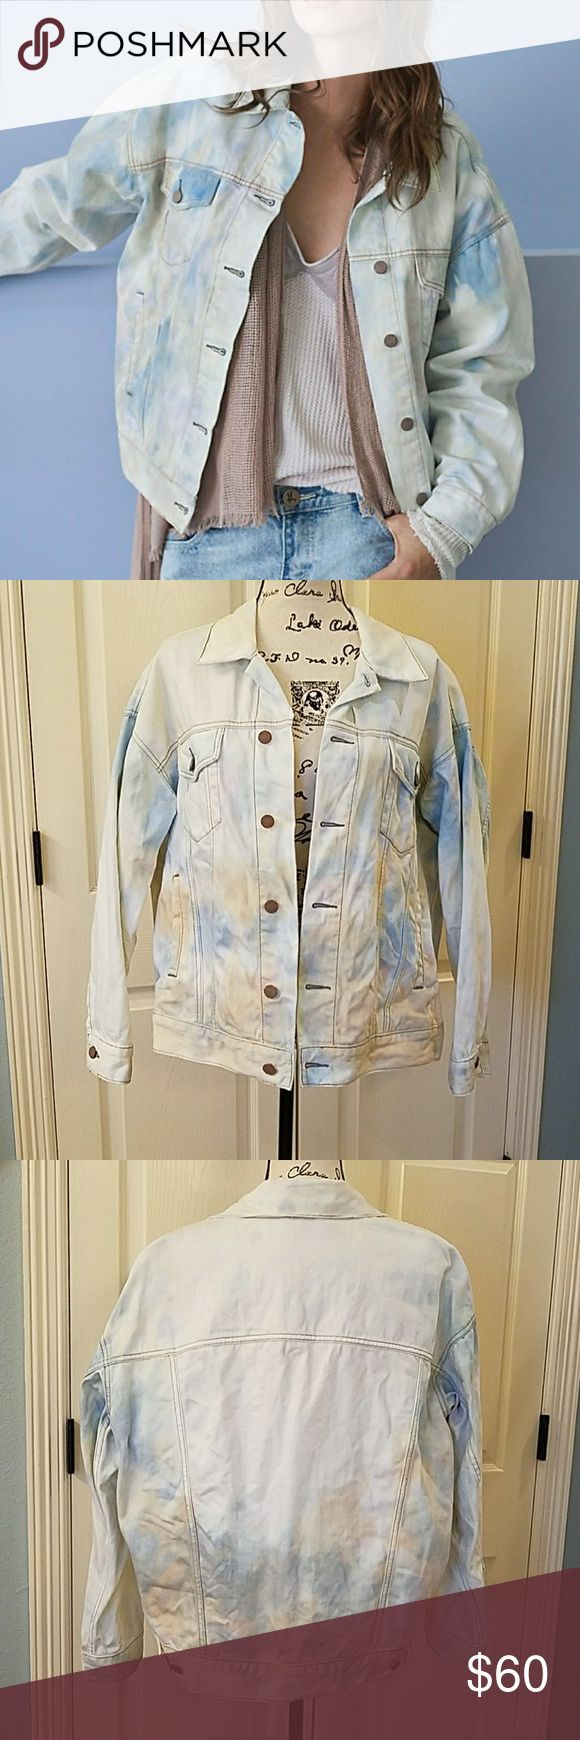 Free People Tie Dye Denim Trucker Jacket EUC Super cute, white denim jacket with pink, blue and yellow tie dye.  Oversized fit. Only worn a couple times.  Washed and hung to dry.  Like new.  No flaws. Free People Jackets & Coats Jean Jackets